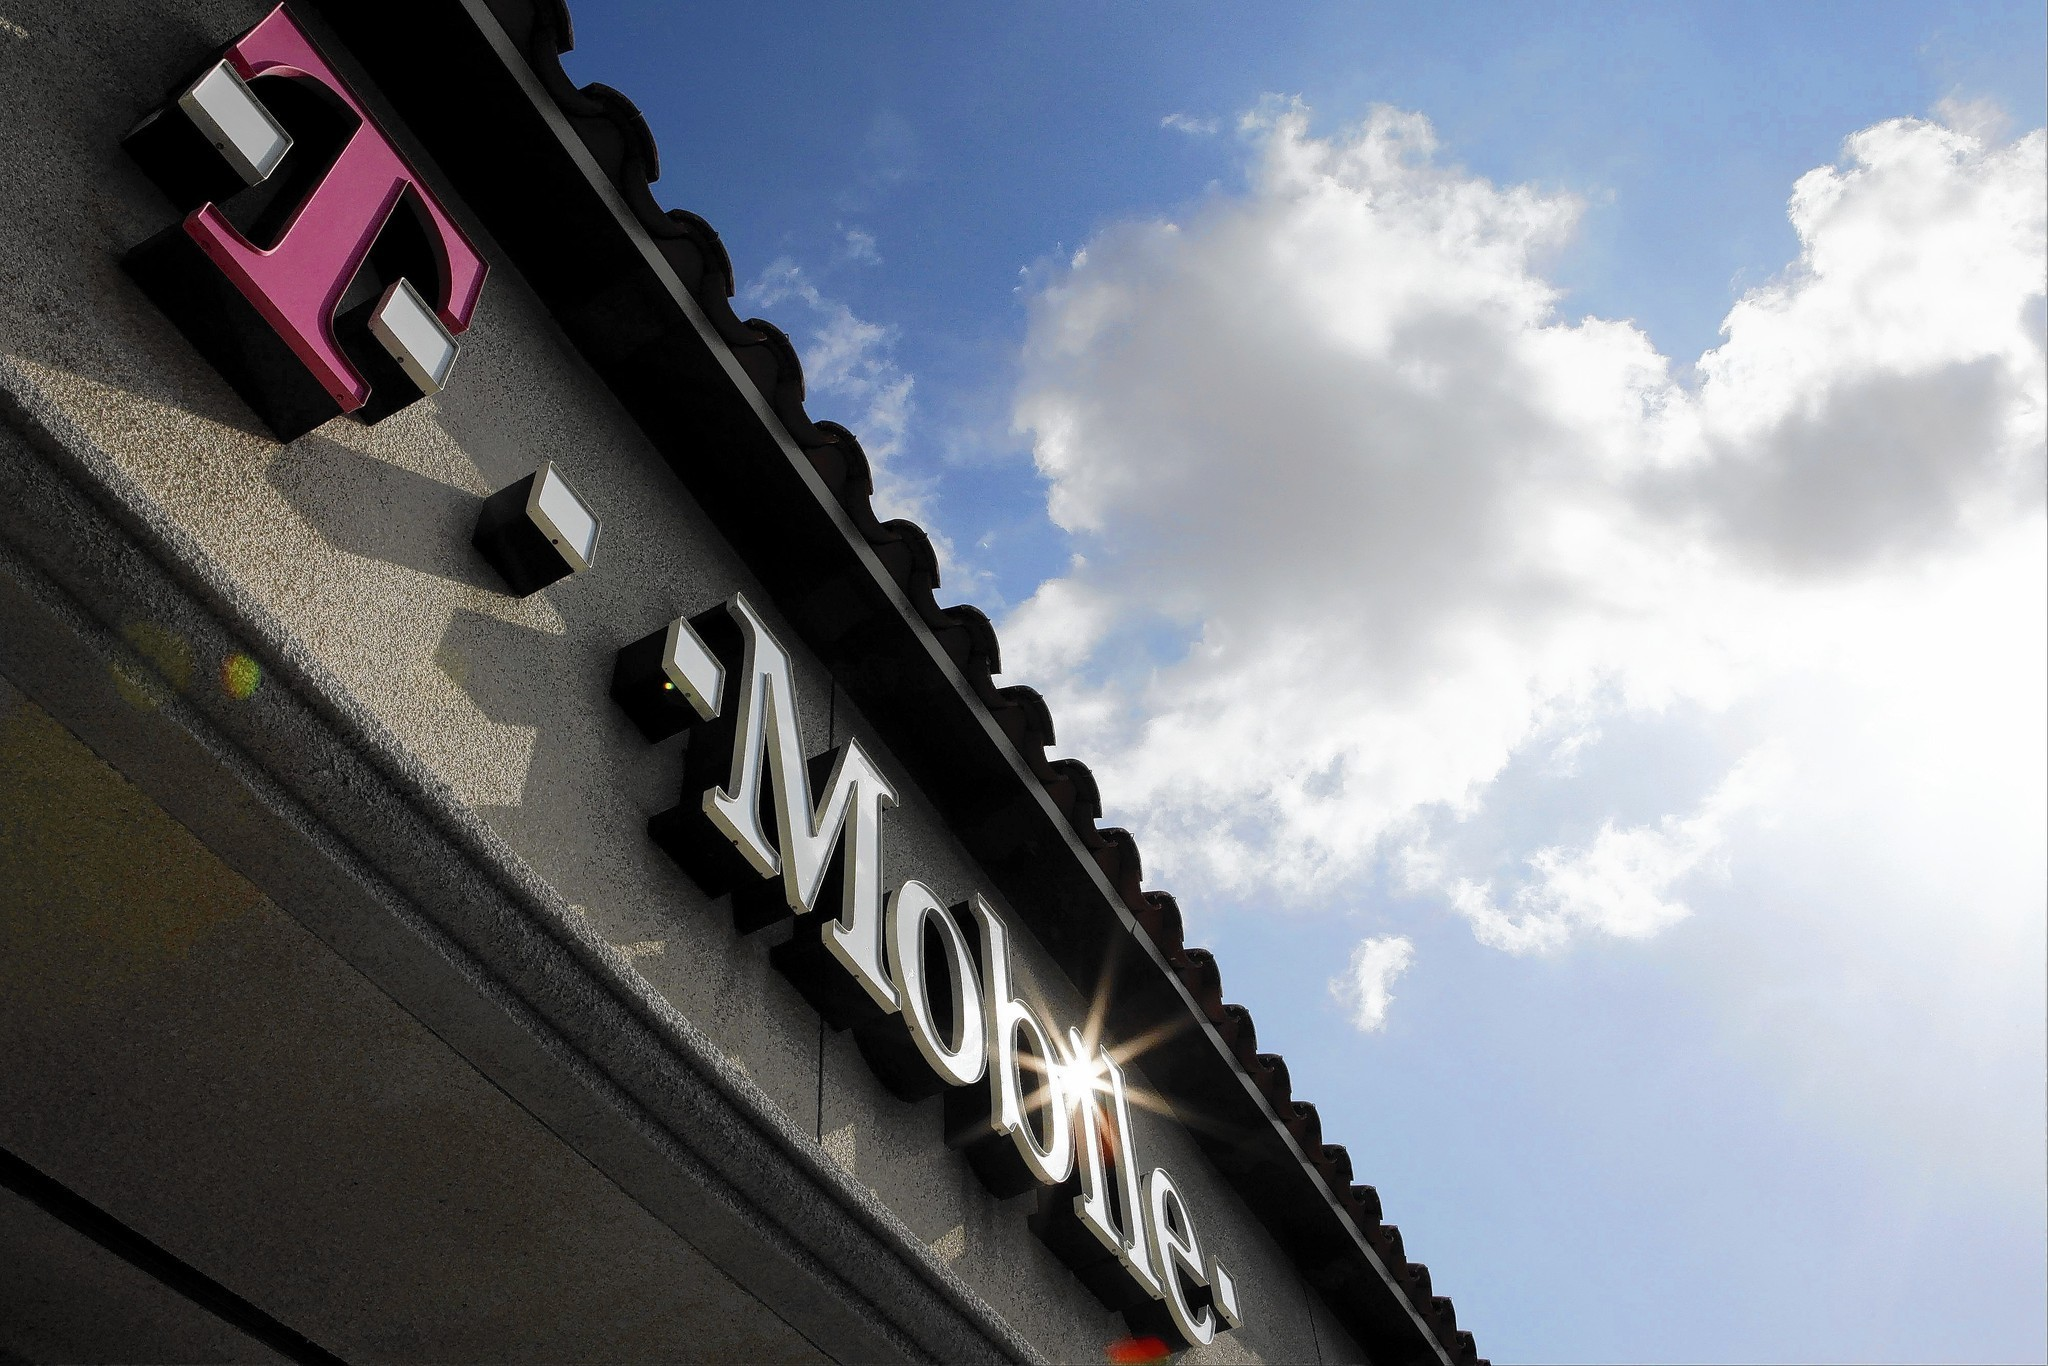 I am a Verizon customer and have excellent coverage, however I am thinking of switching because of price and I like the idea of t mobiles binge on. Does t mobile offer a free trial? I don't want to switch if the service ended up being unreliable.